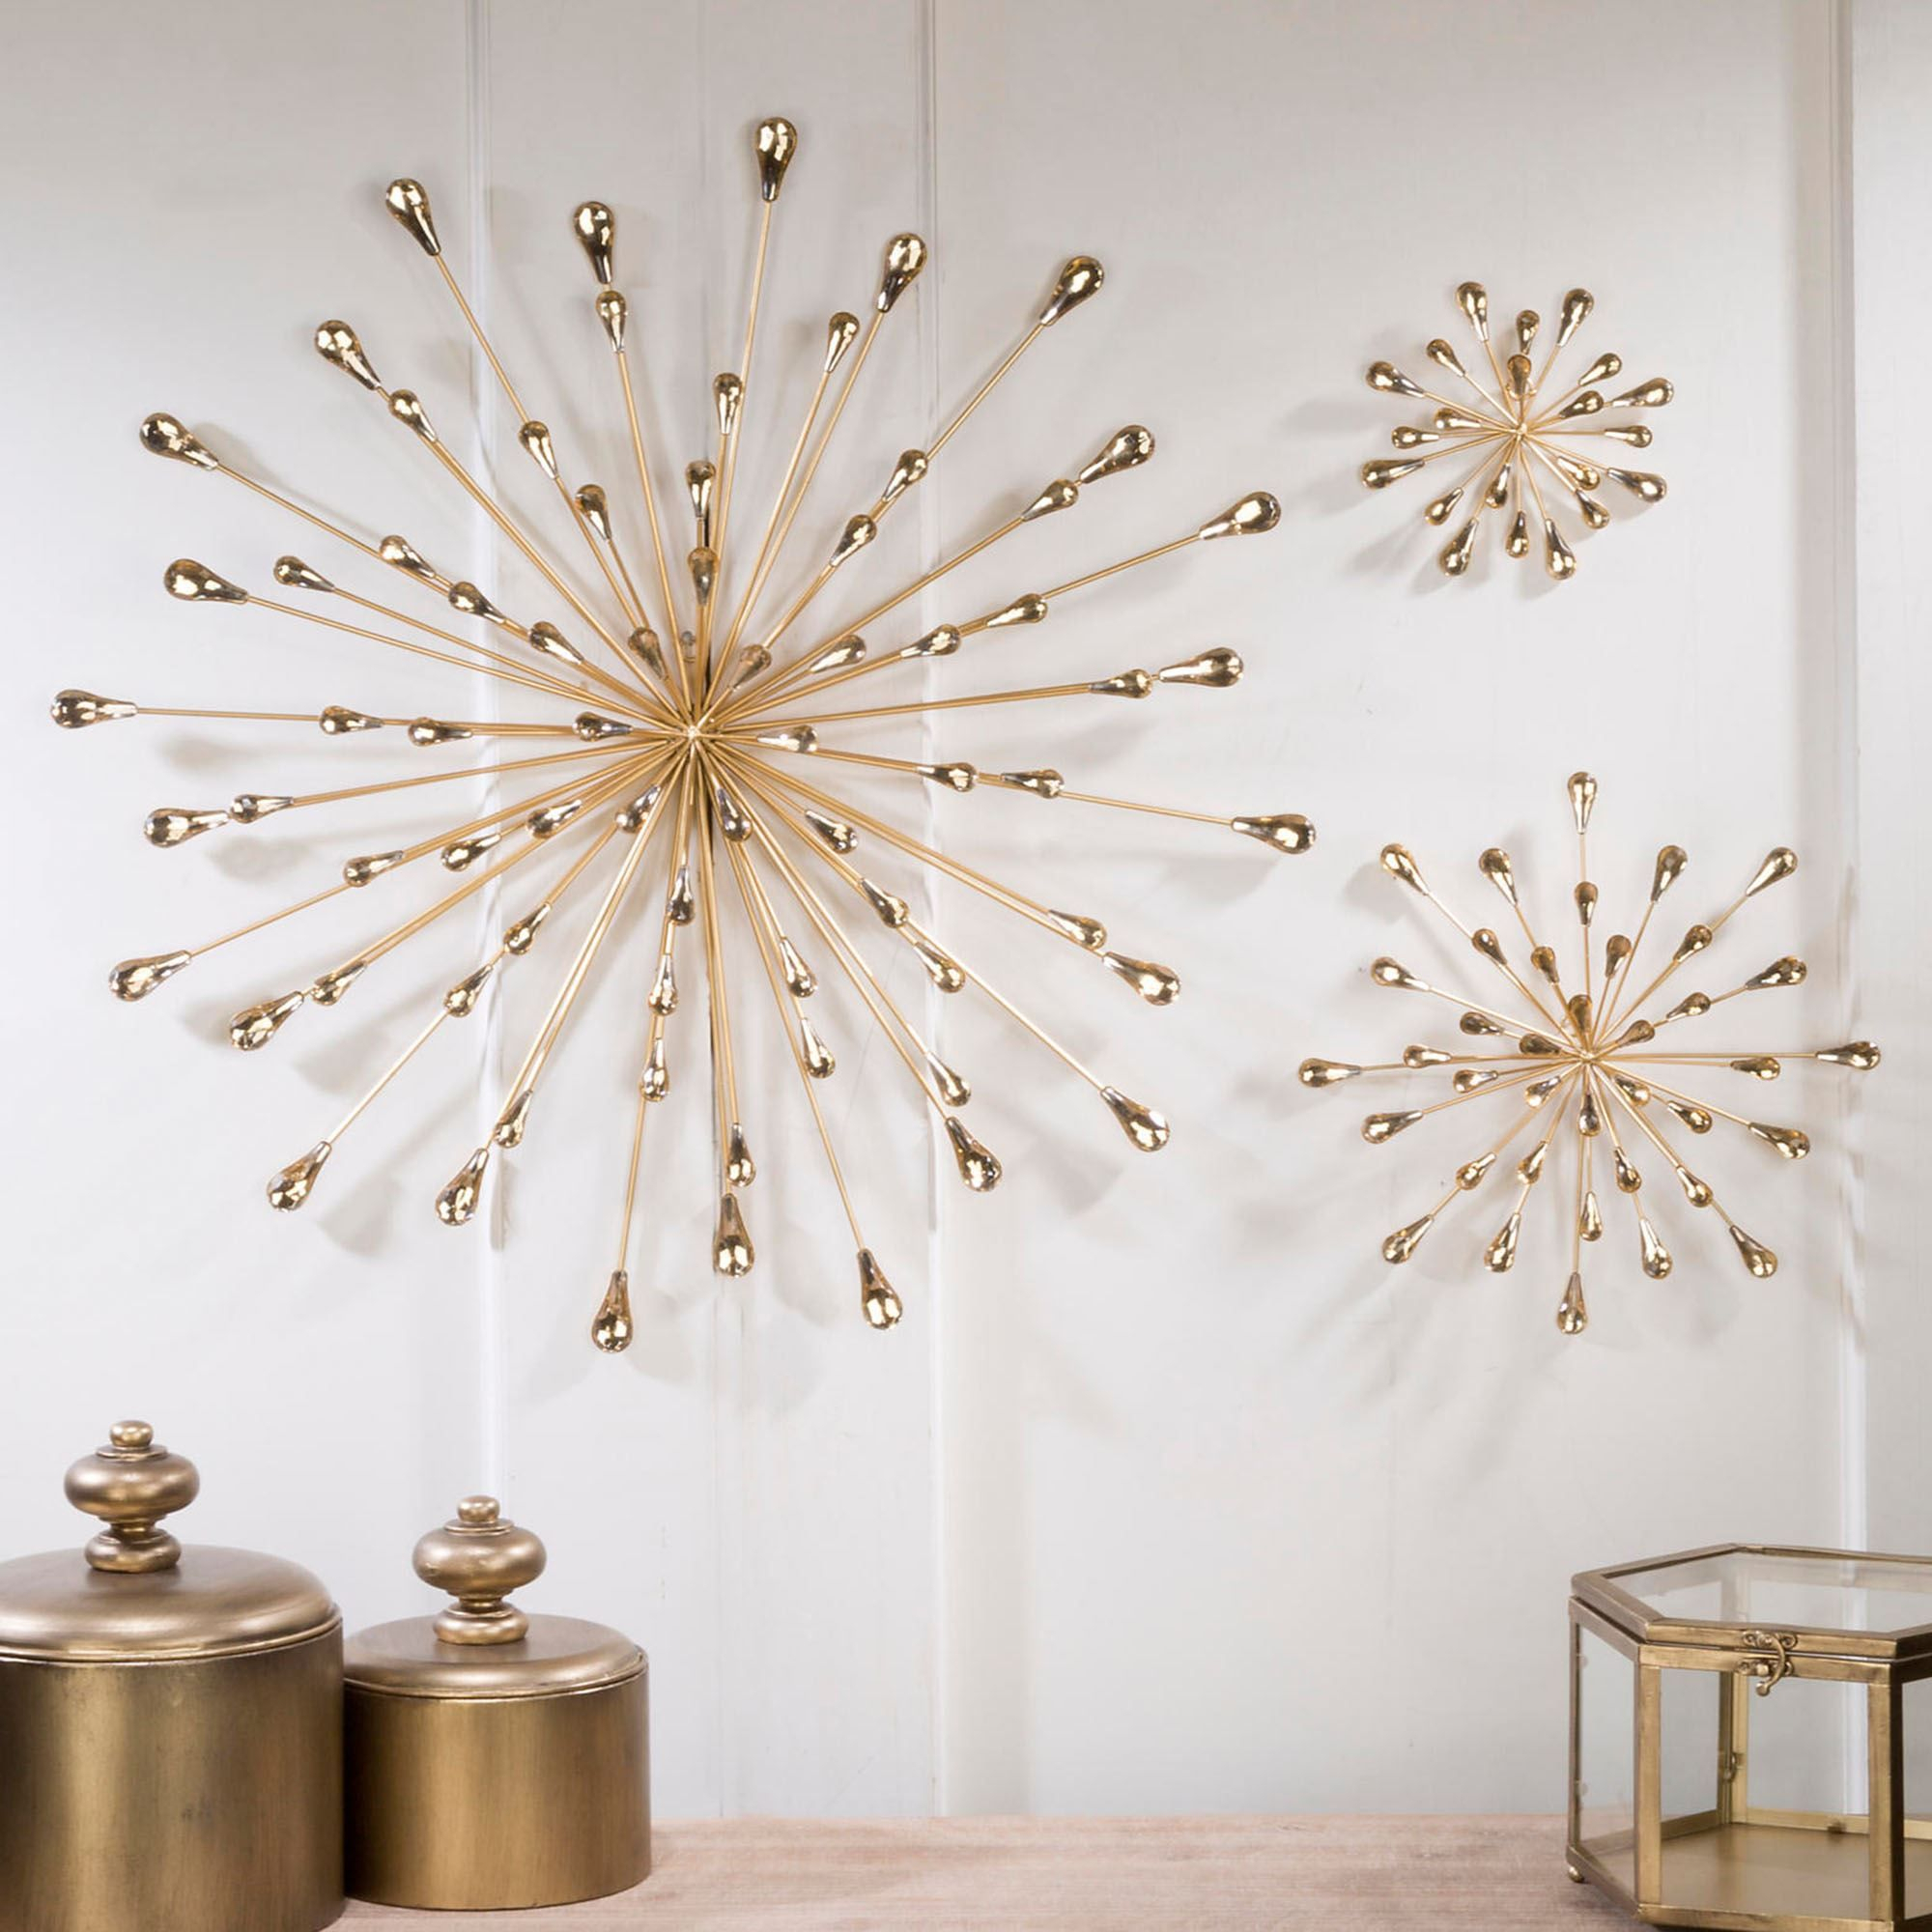 Jelena Gold Starburst Metal Wall Art | Projects In 2019 in Starburst Wall Decor By Willa Arlo Interiors (Image 11 of 30)